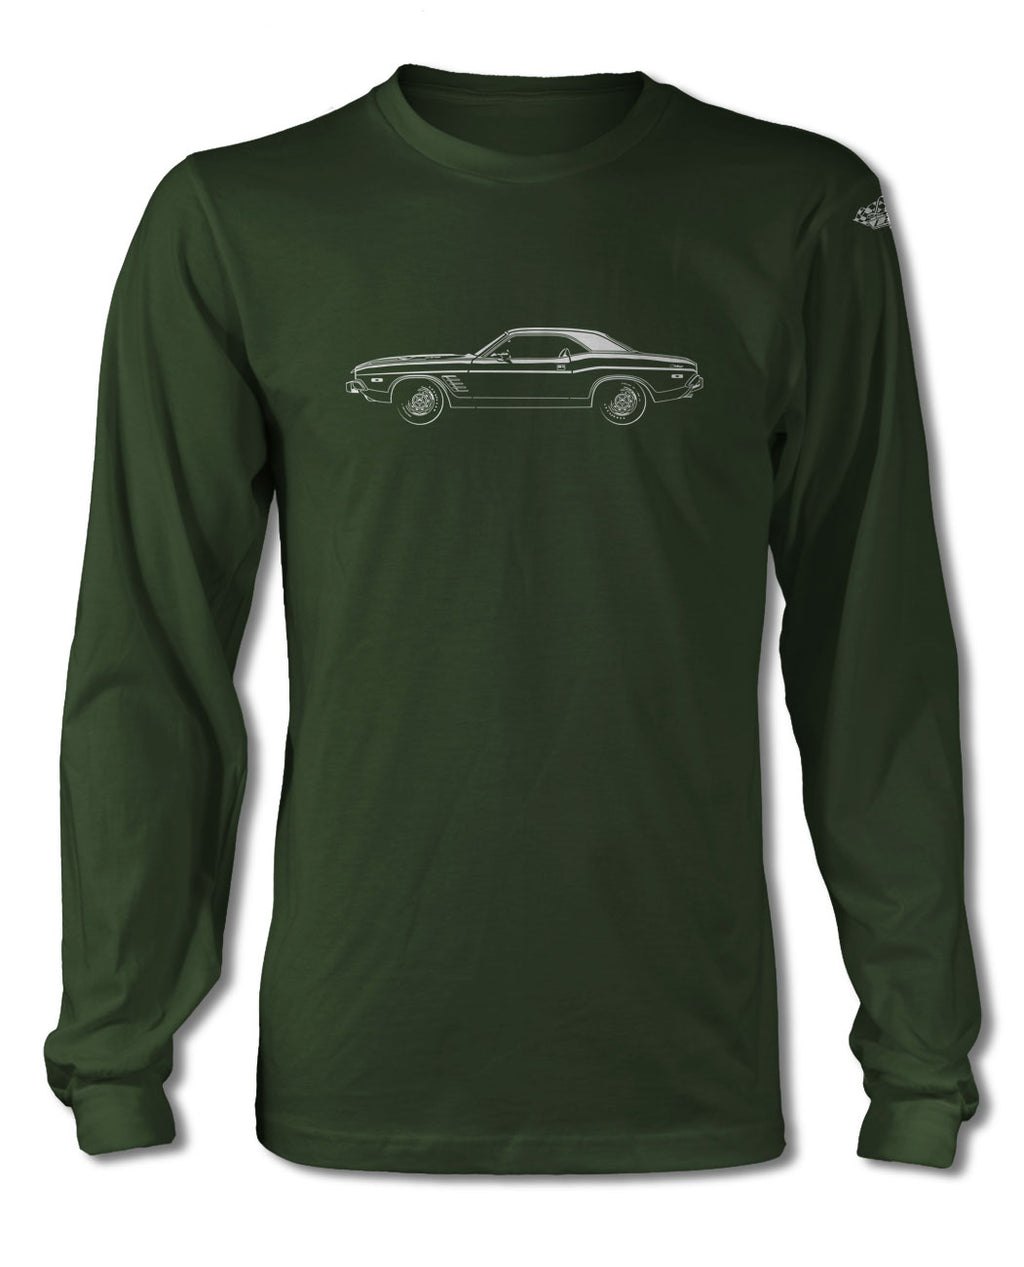 1974 Dodge Challenger Rallye Coupe T-Shirt - Long Sleeves - Side View